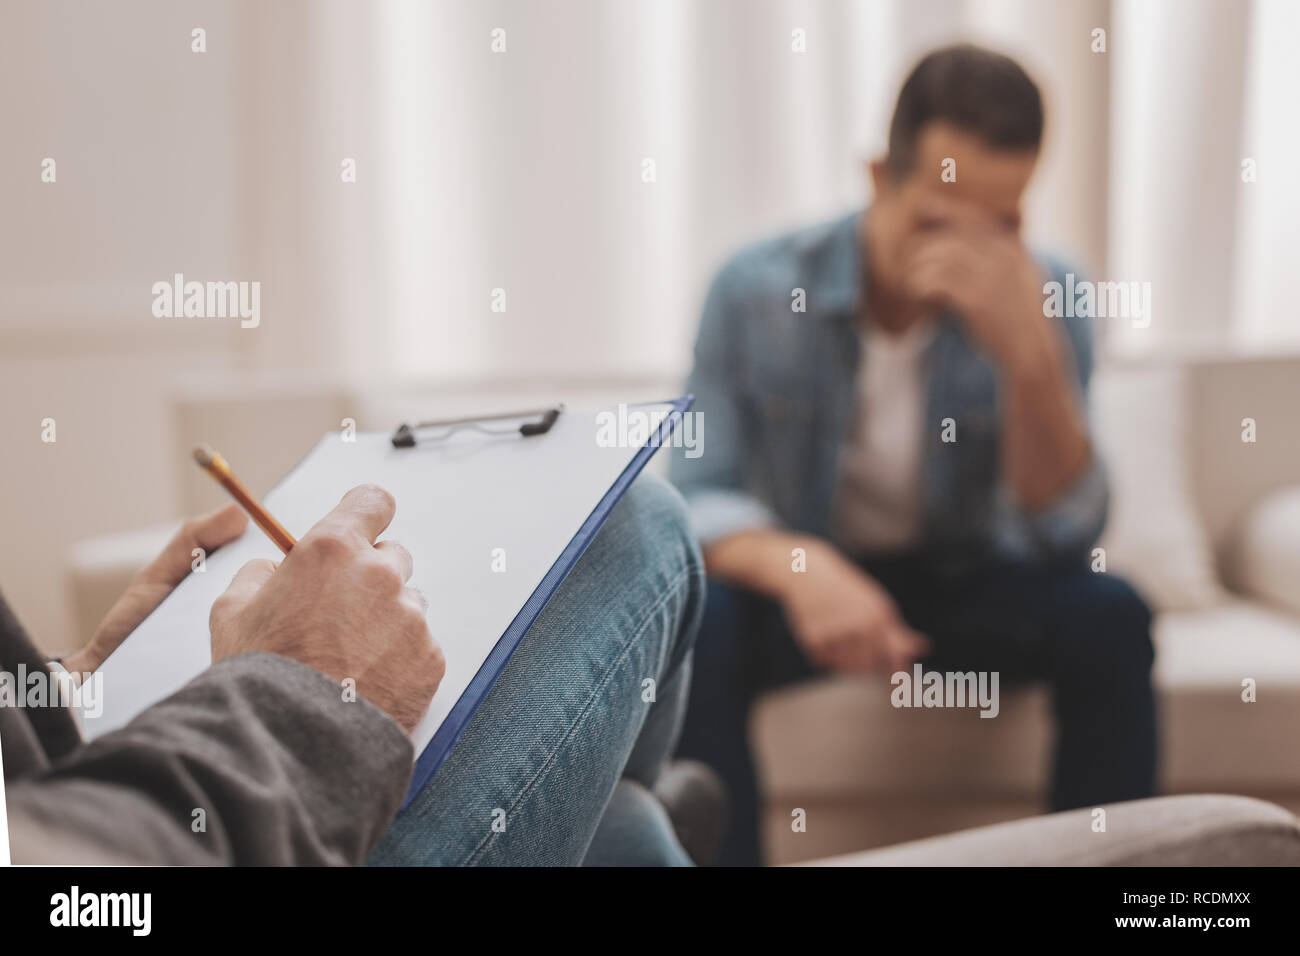 Qualified therapist searching the solution for depression - Stock Image